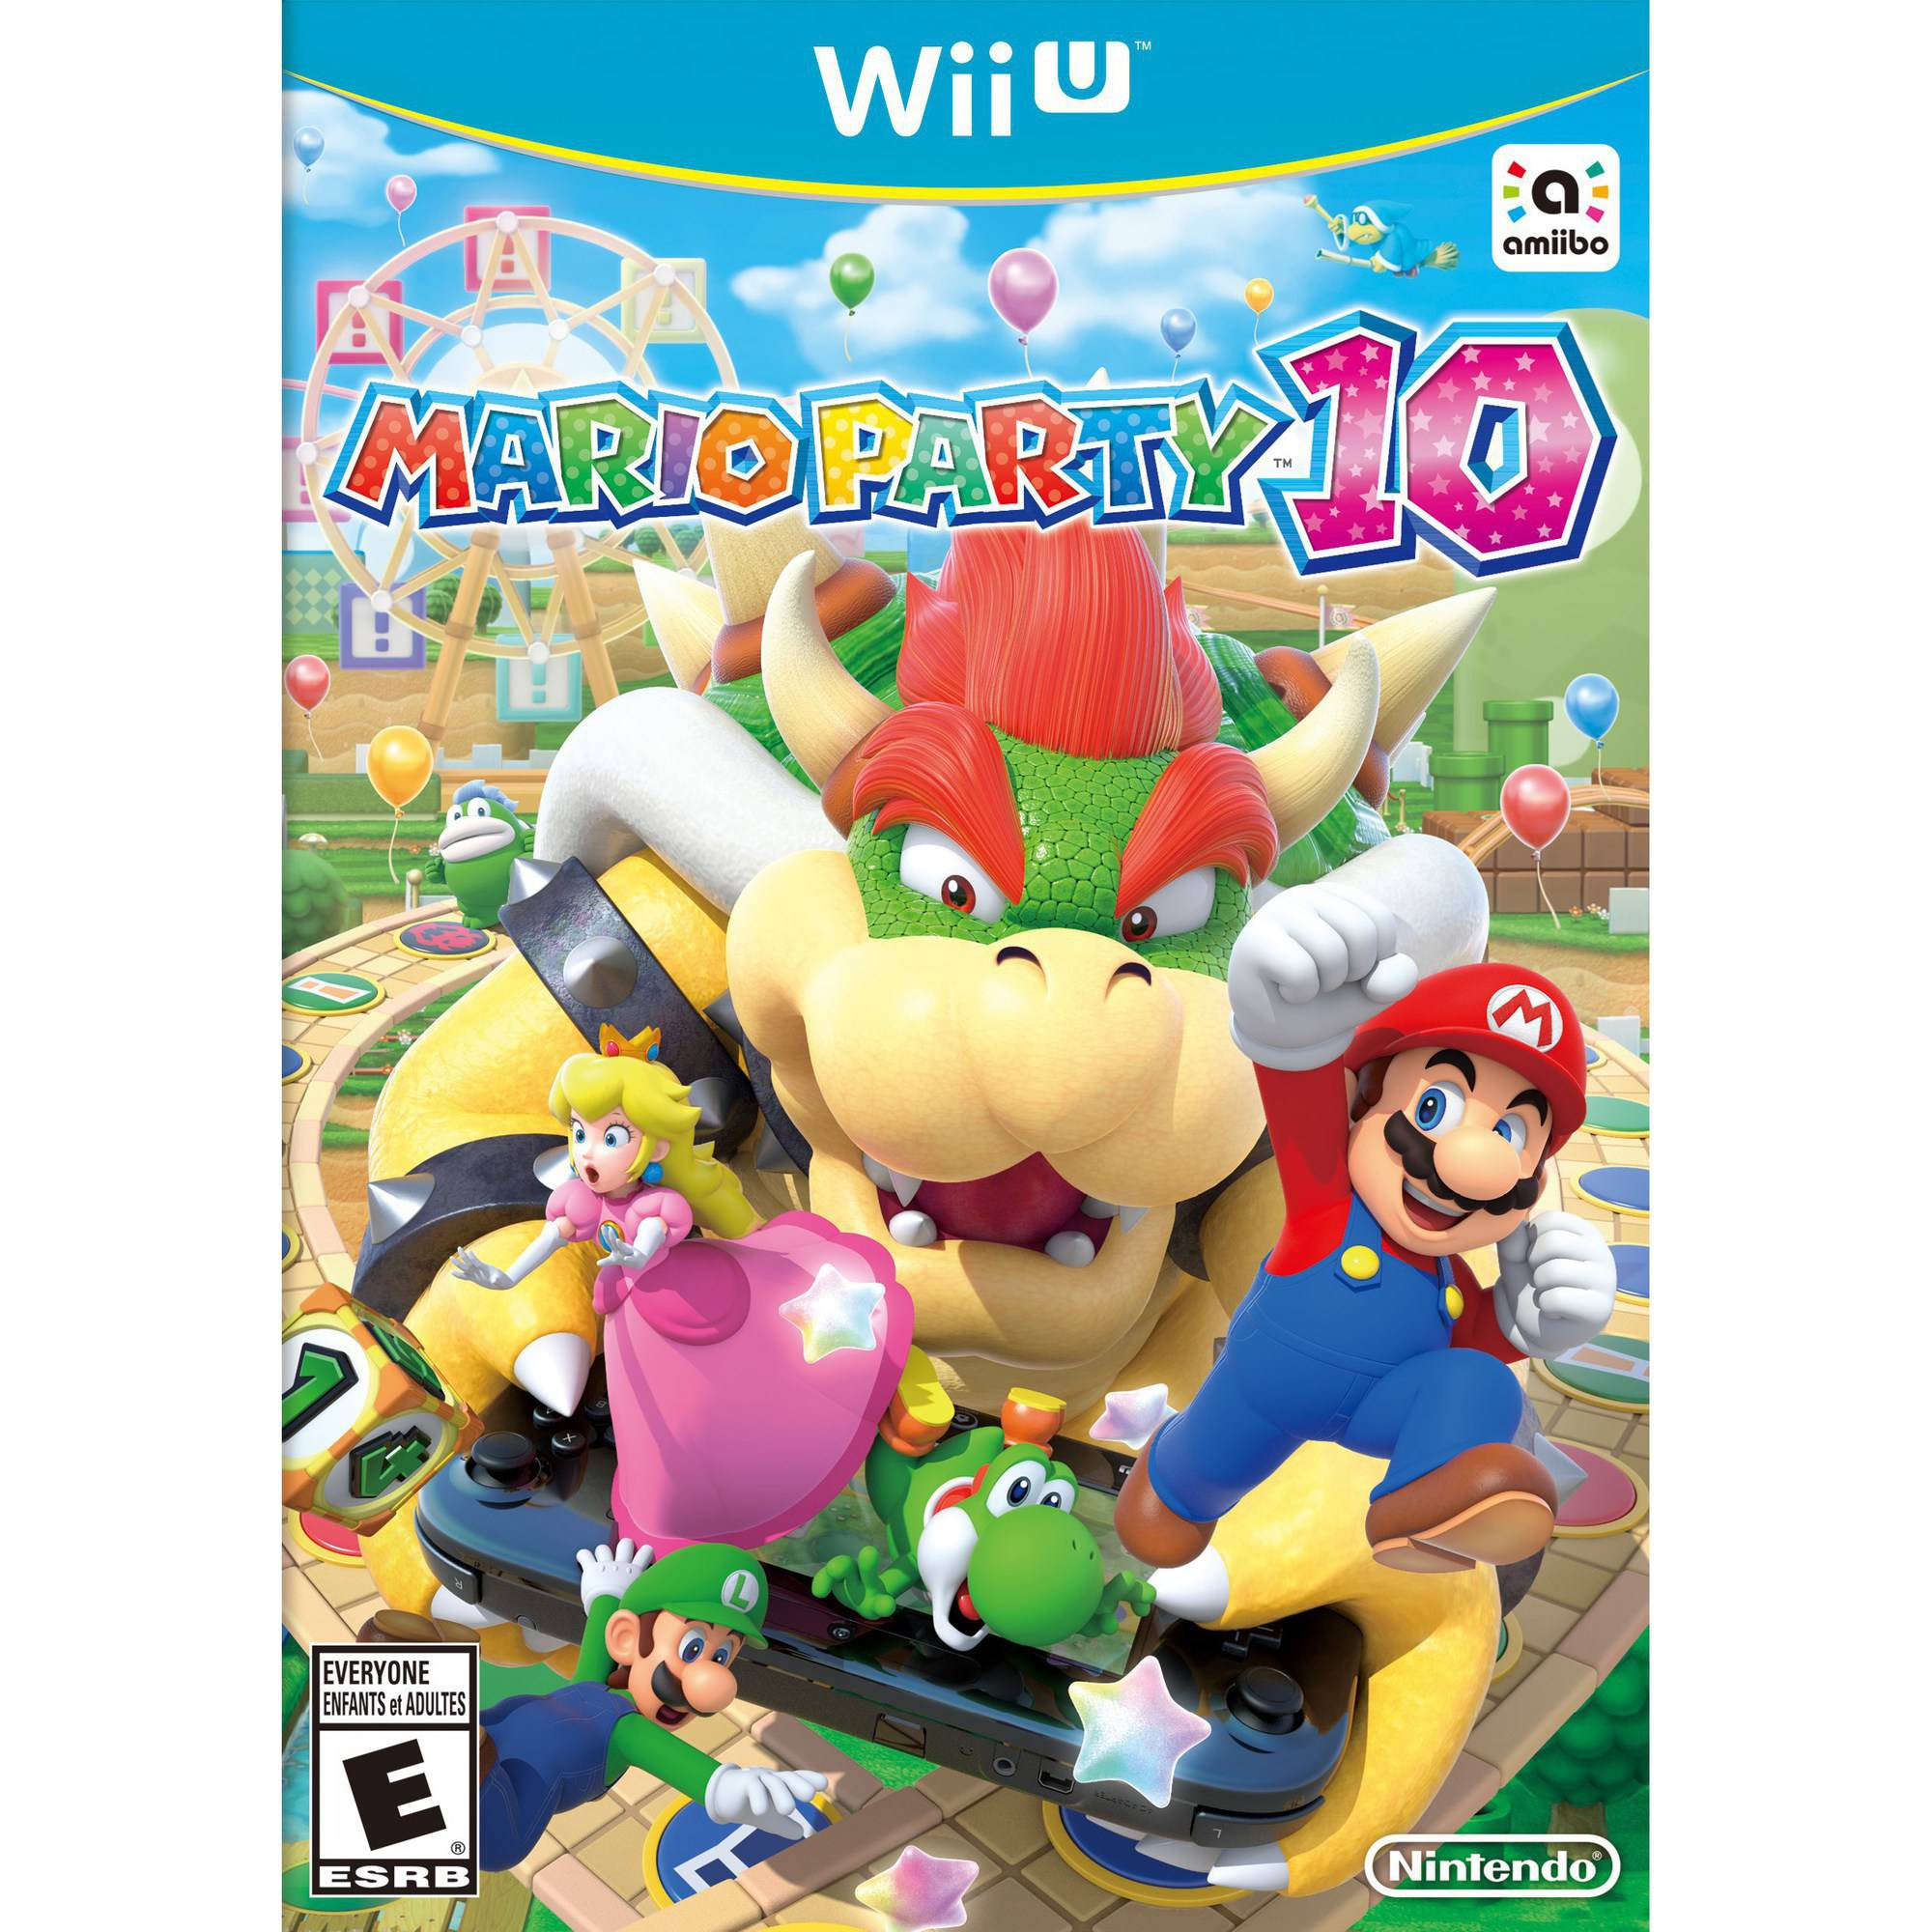 Mario Party 10 (Wii U) - Pre-Owned